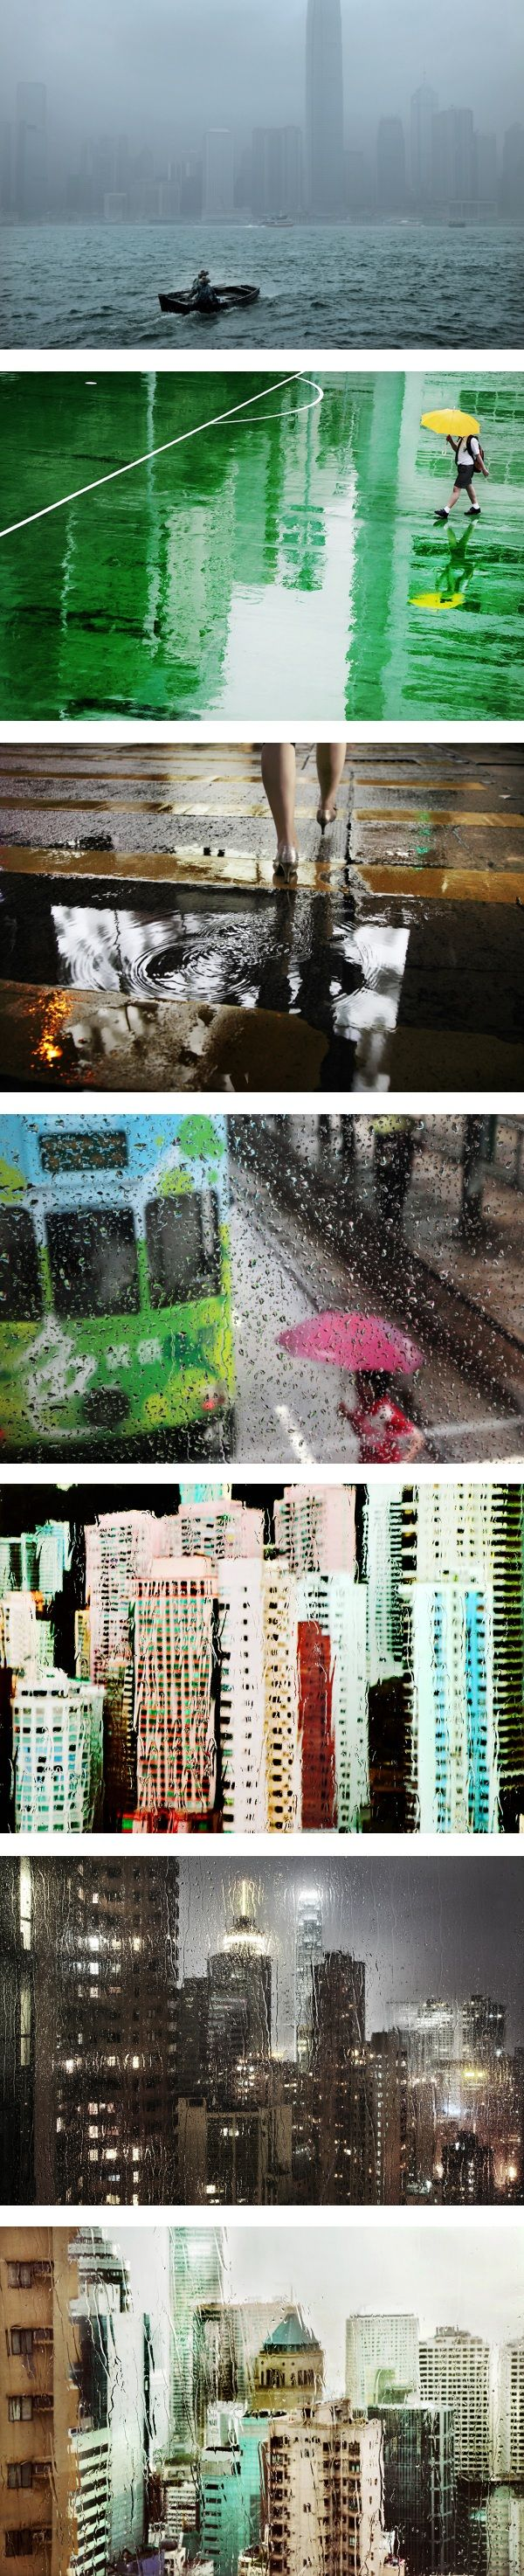 best ideas about photo essay documentary hong kong in the rain a photo series hong kong 2012 photographs